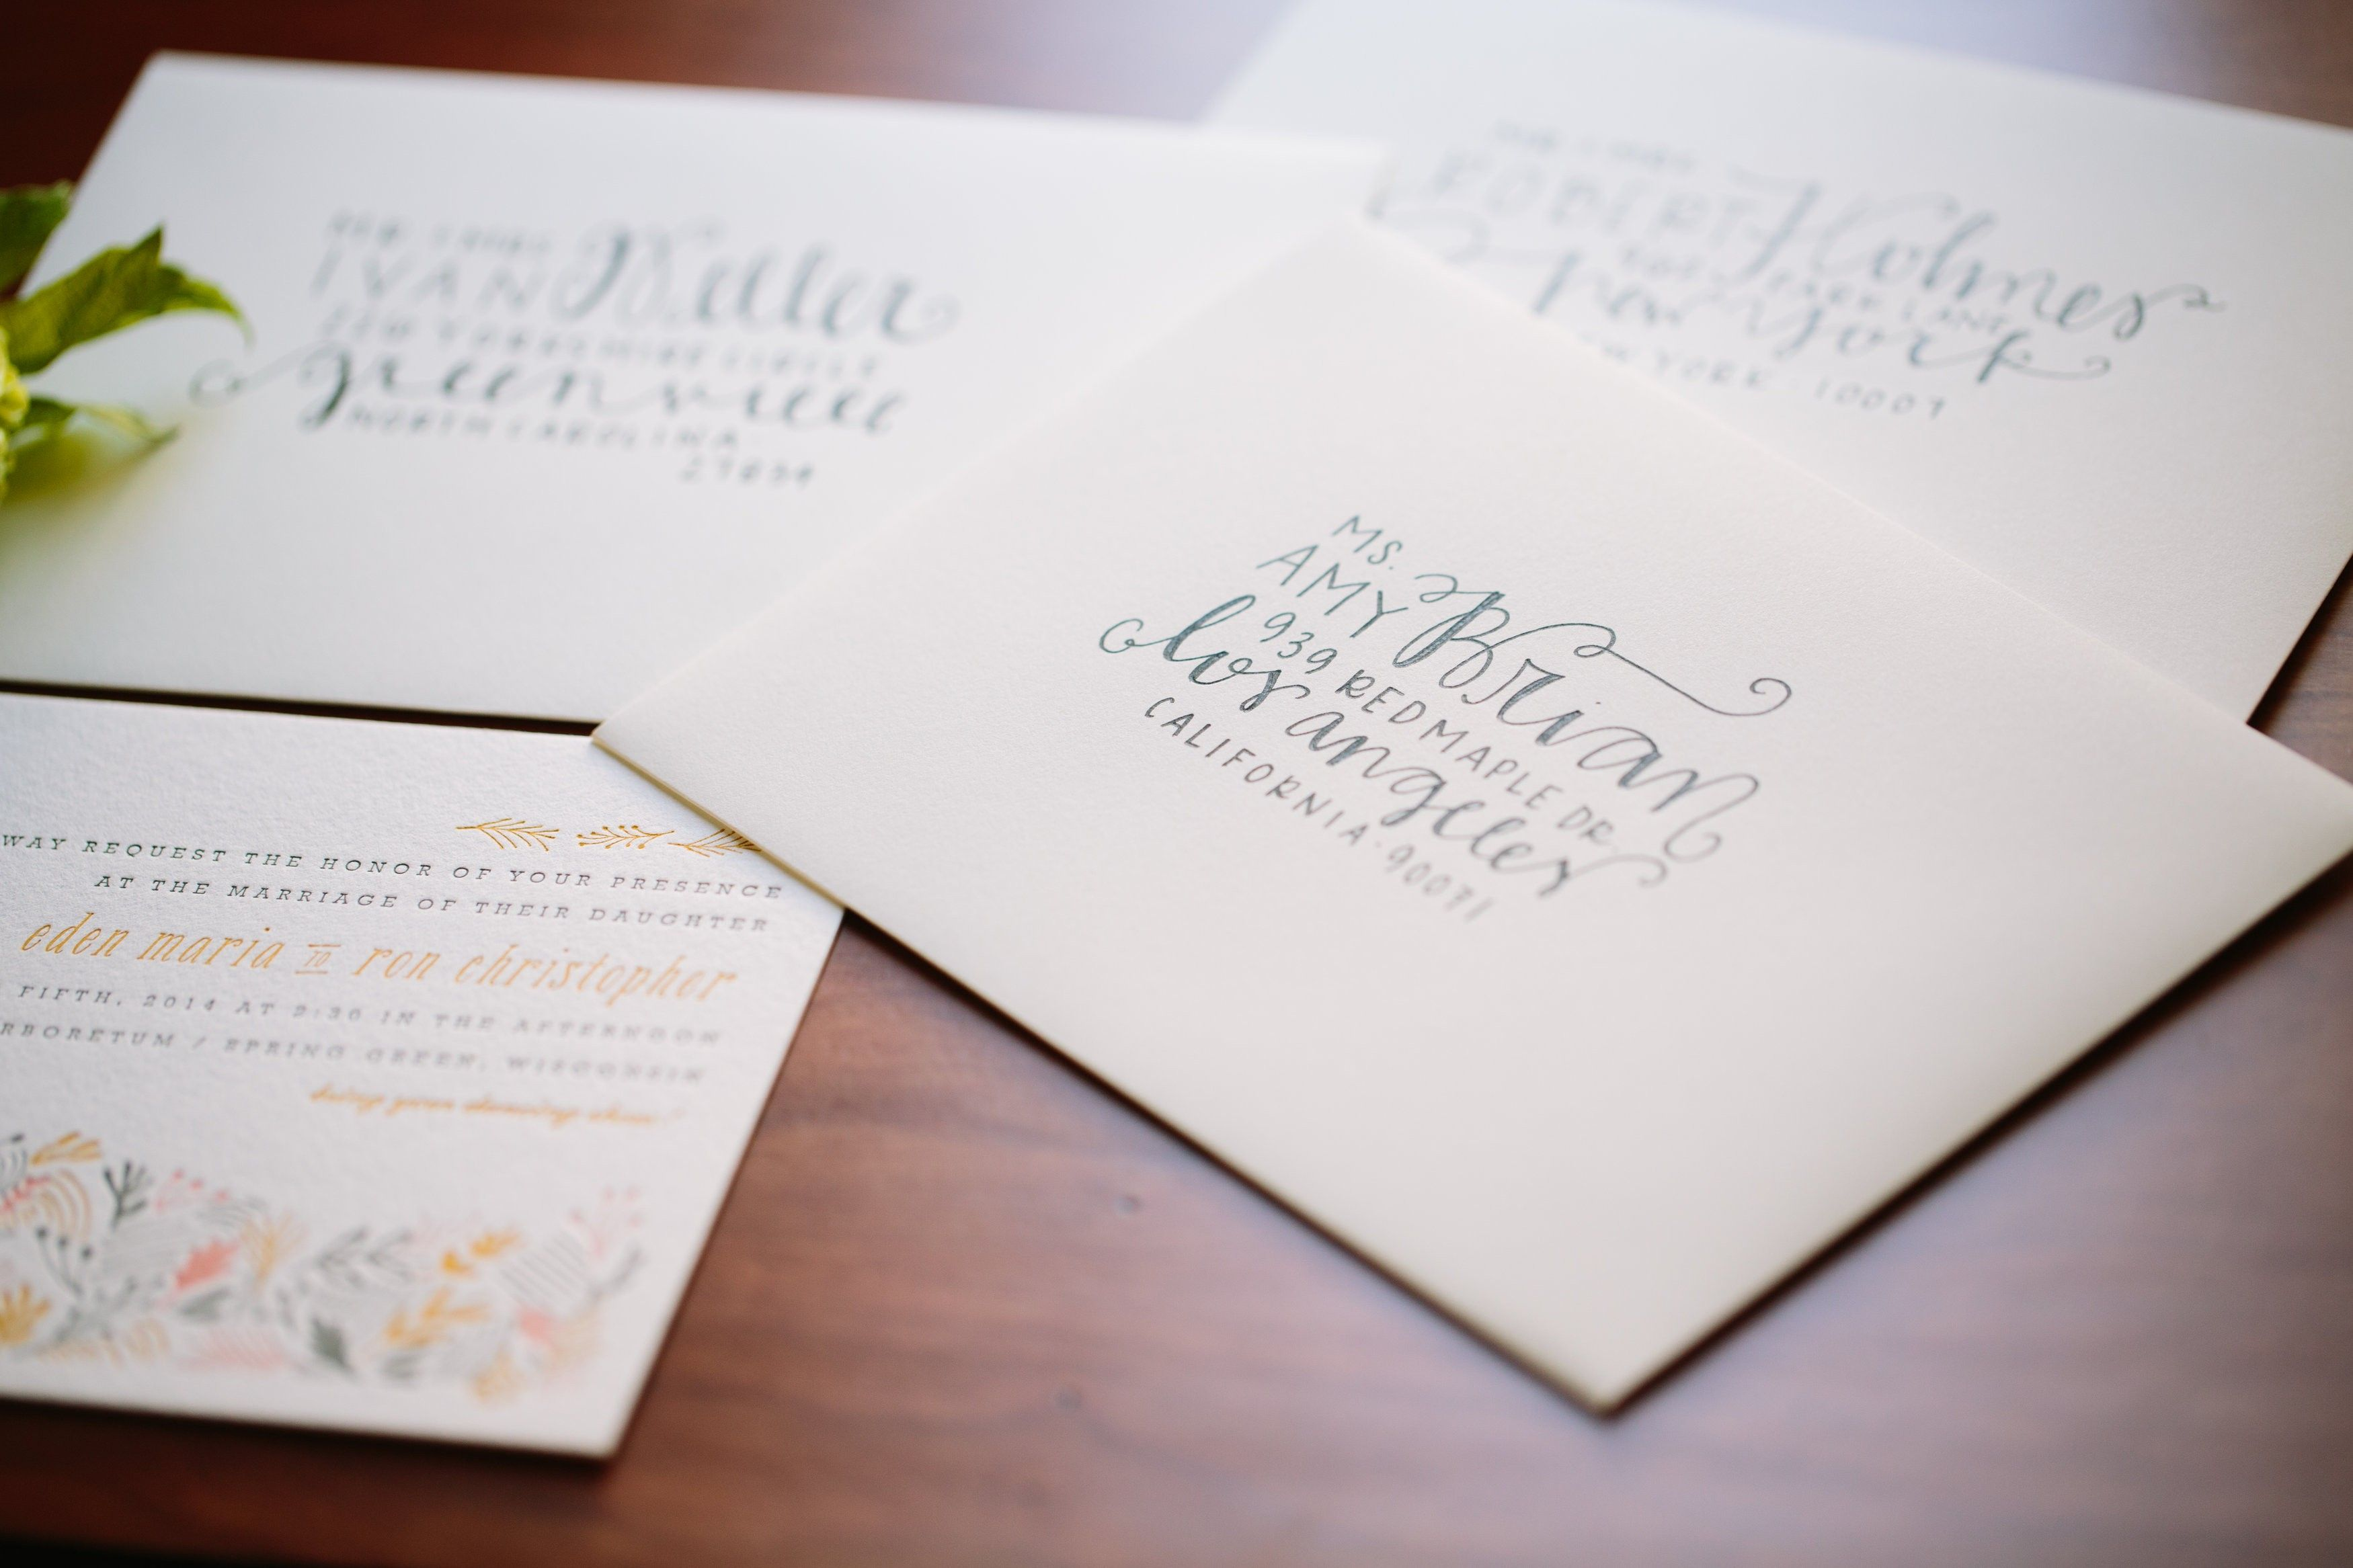 Best Address Wedding Invitations To Families Ideas With Looking Design Th In 2020 Handwritten Wedding Invitations Fun Wedding Invitations Wedding Invitation Etiquette